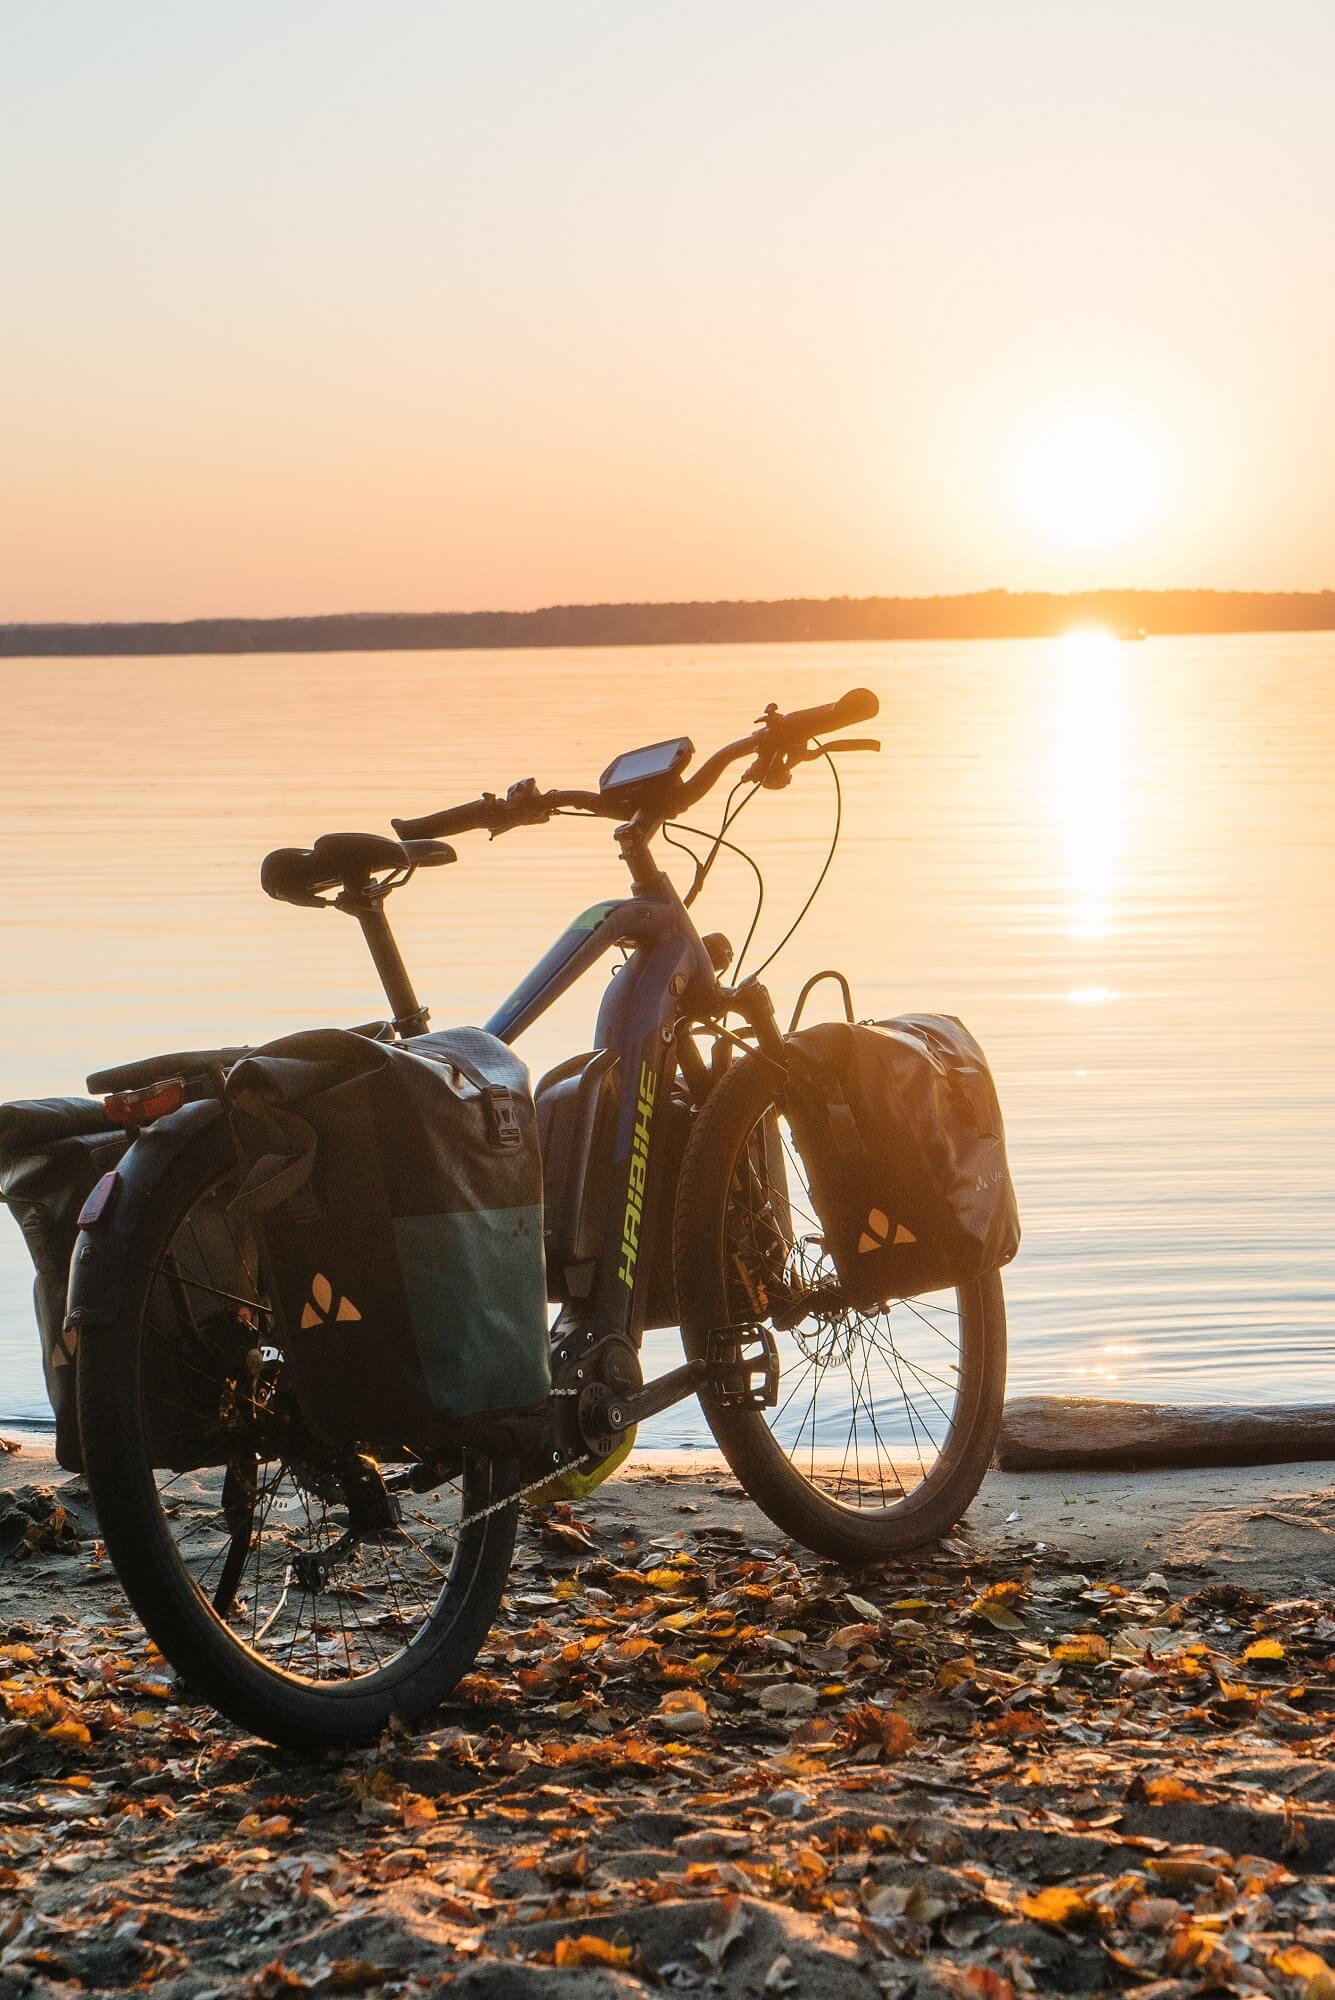 Trekking bike in front of a lake with sunset